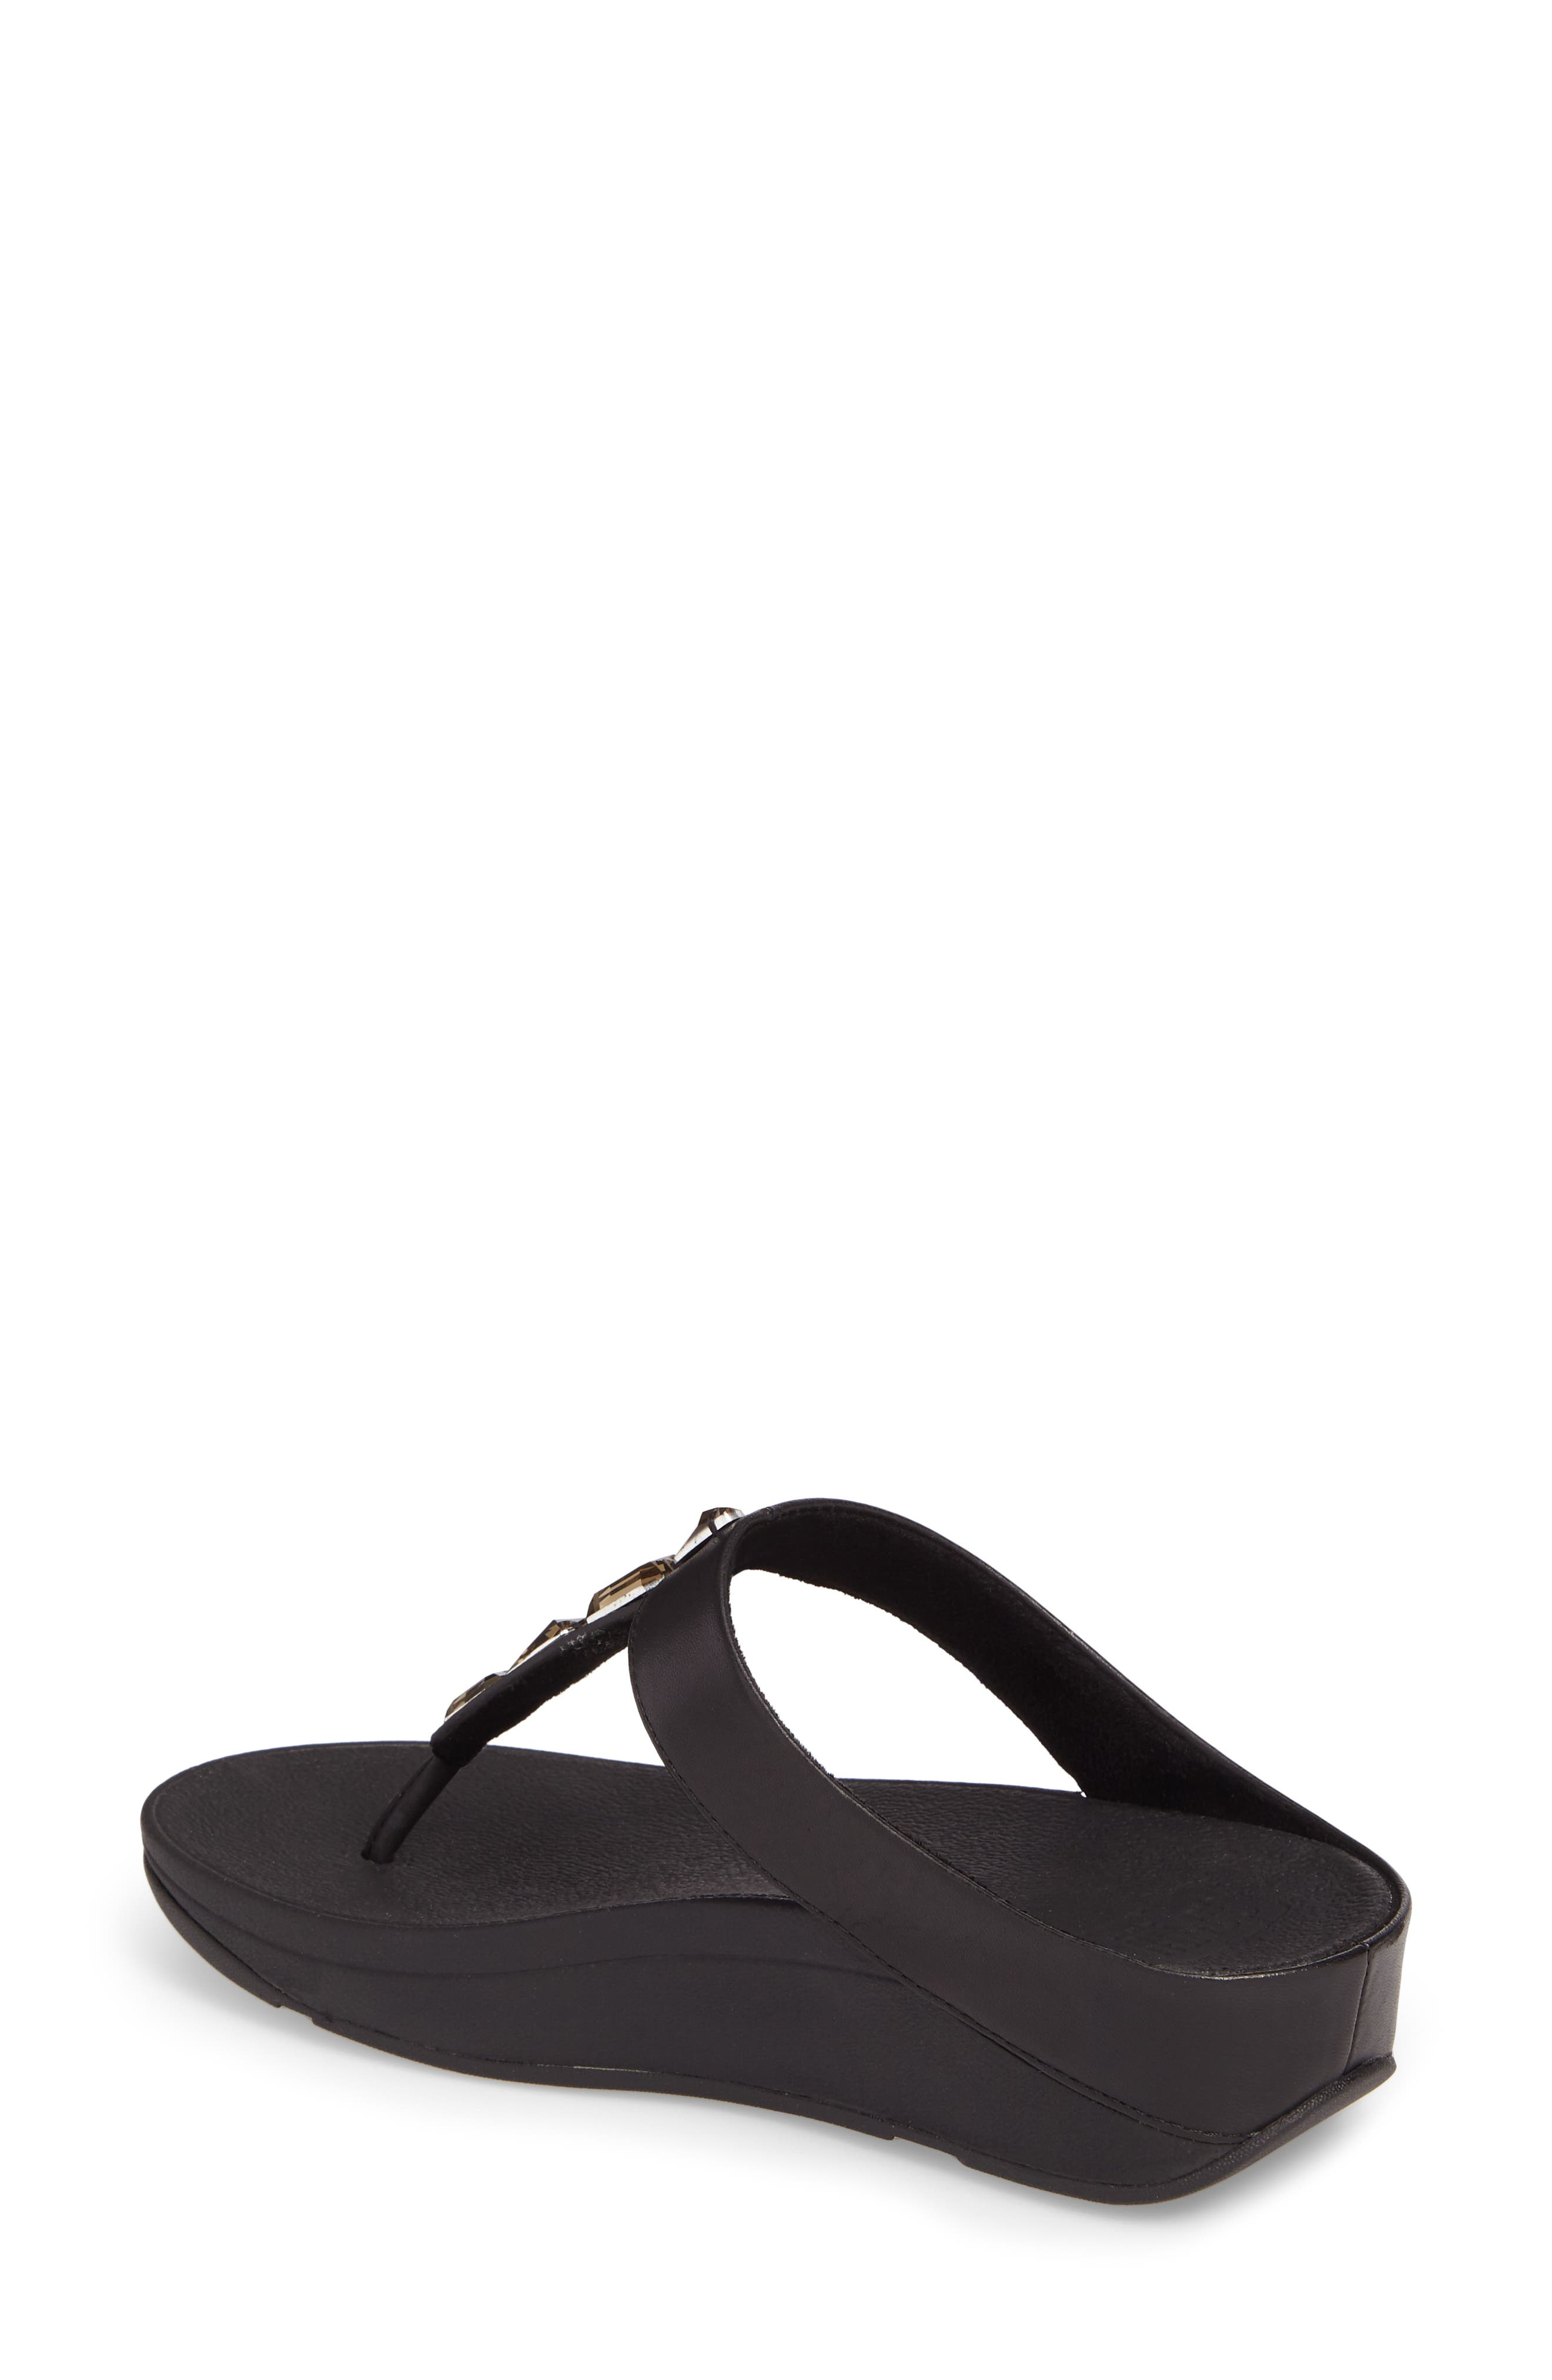 FITFLOP Leather Roka Sandals, Black